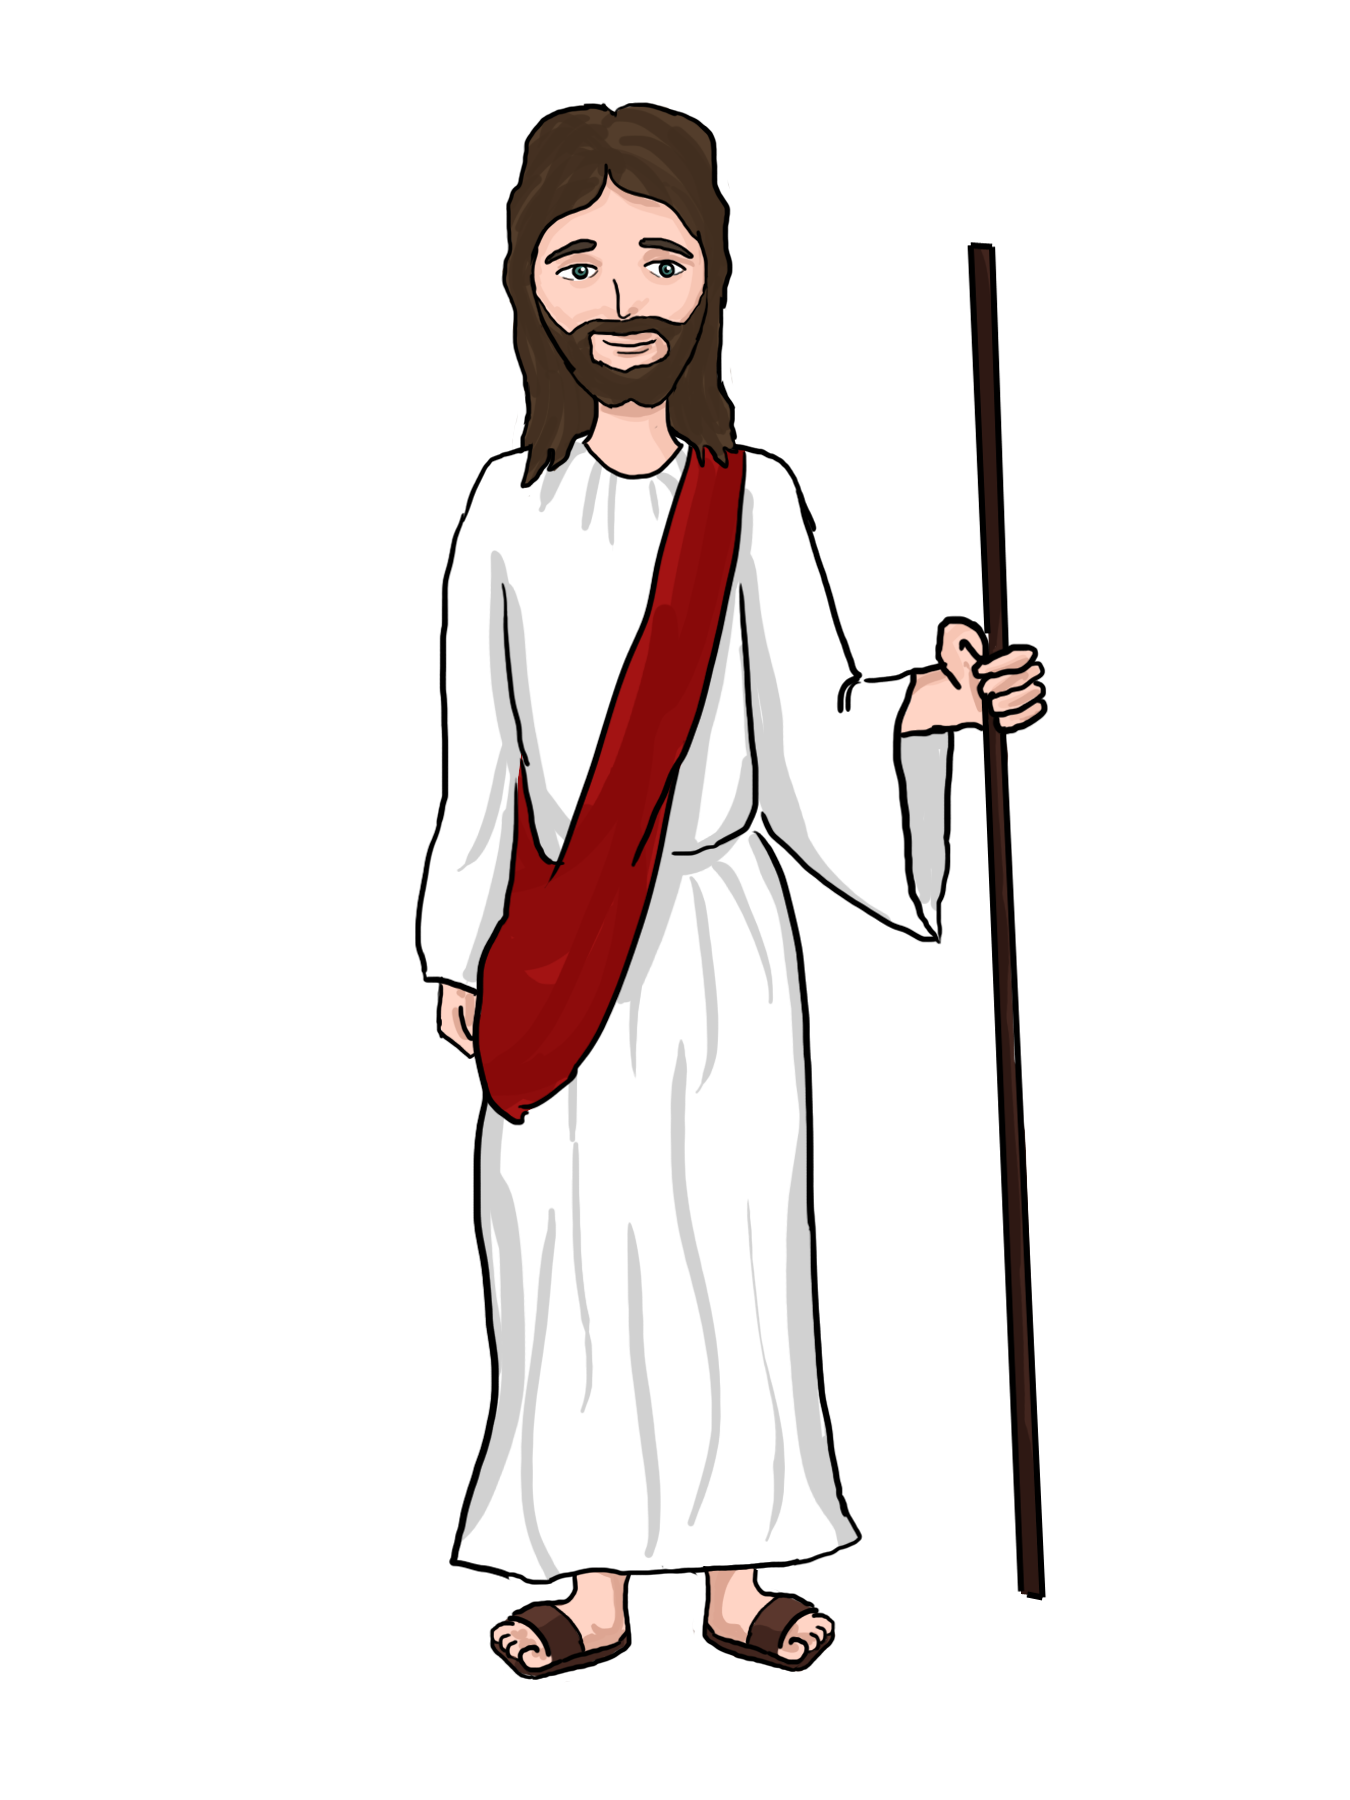 Free Cartoon Jesus, Download Free Clip Art, Free Clip Art on.